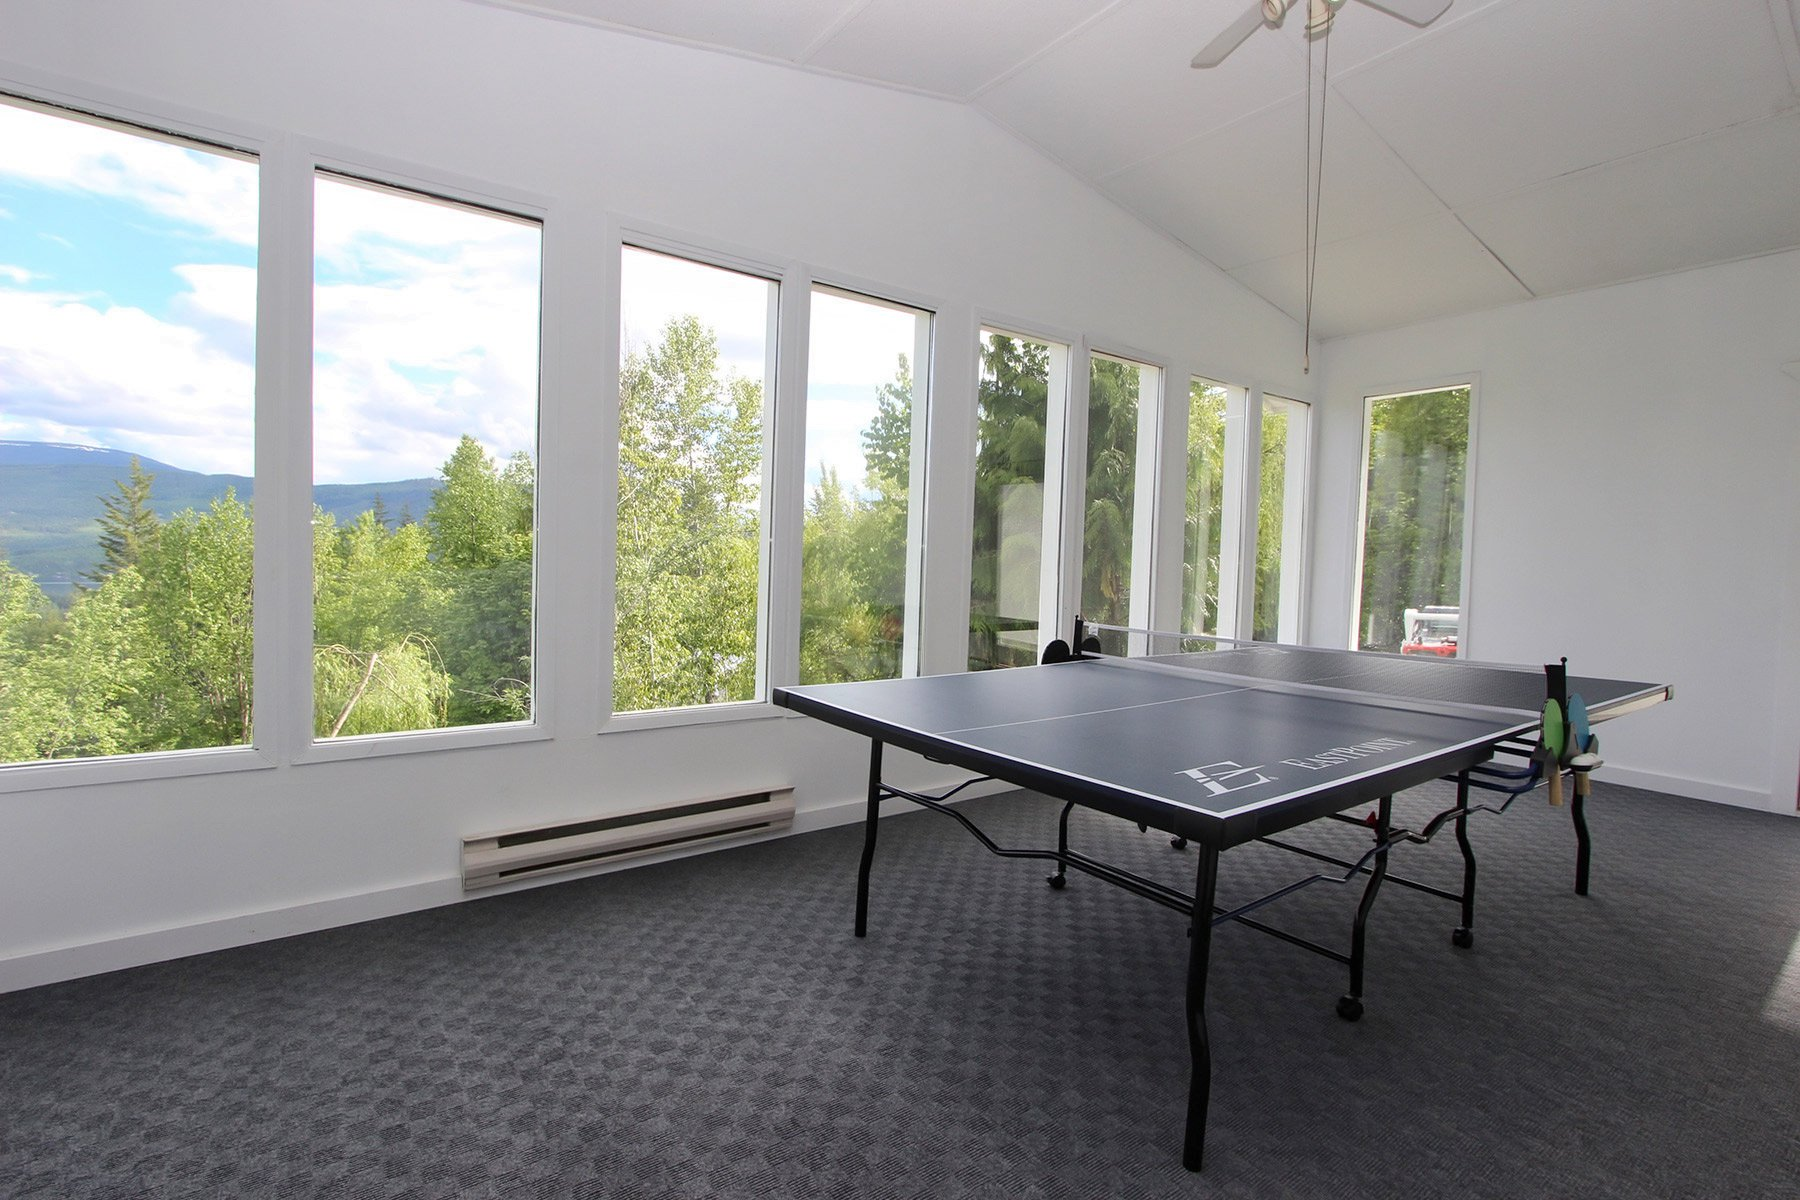 Photo 48: Photos: 6831 Magna Bay Drive in Magna Bay: House with Acreage for sale : MLS®# 10205520